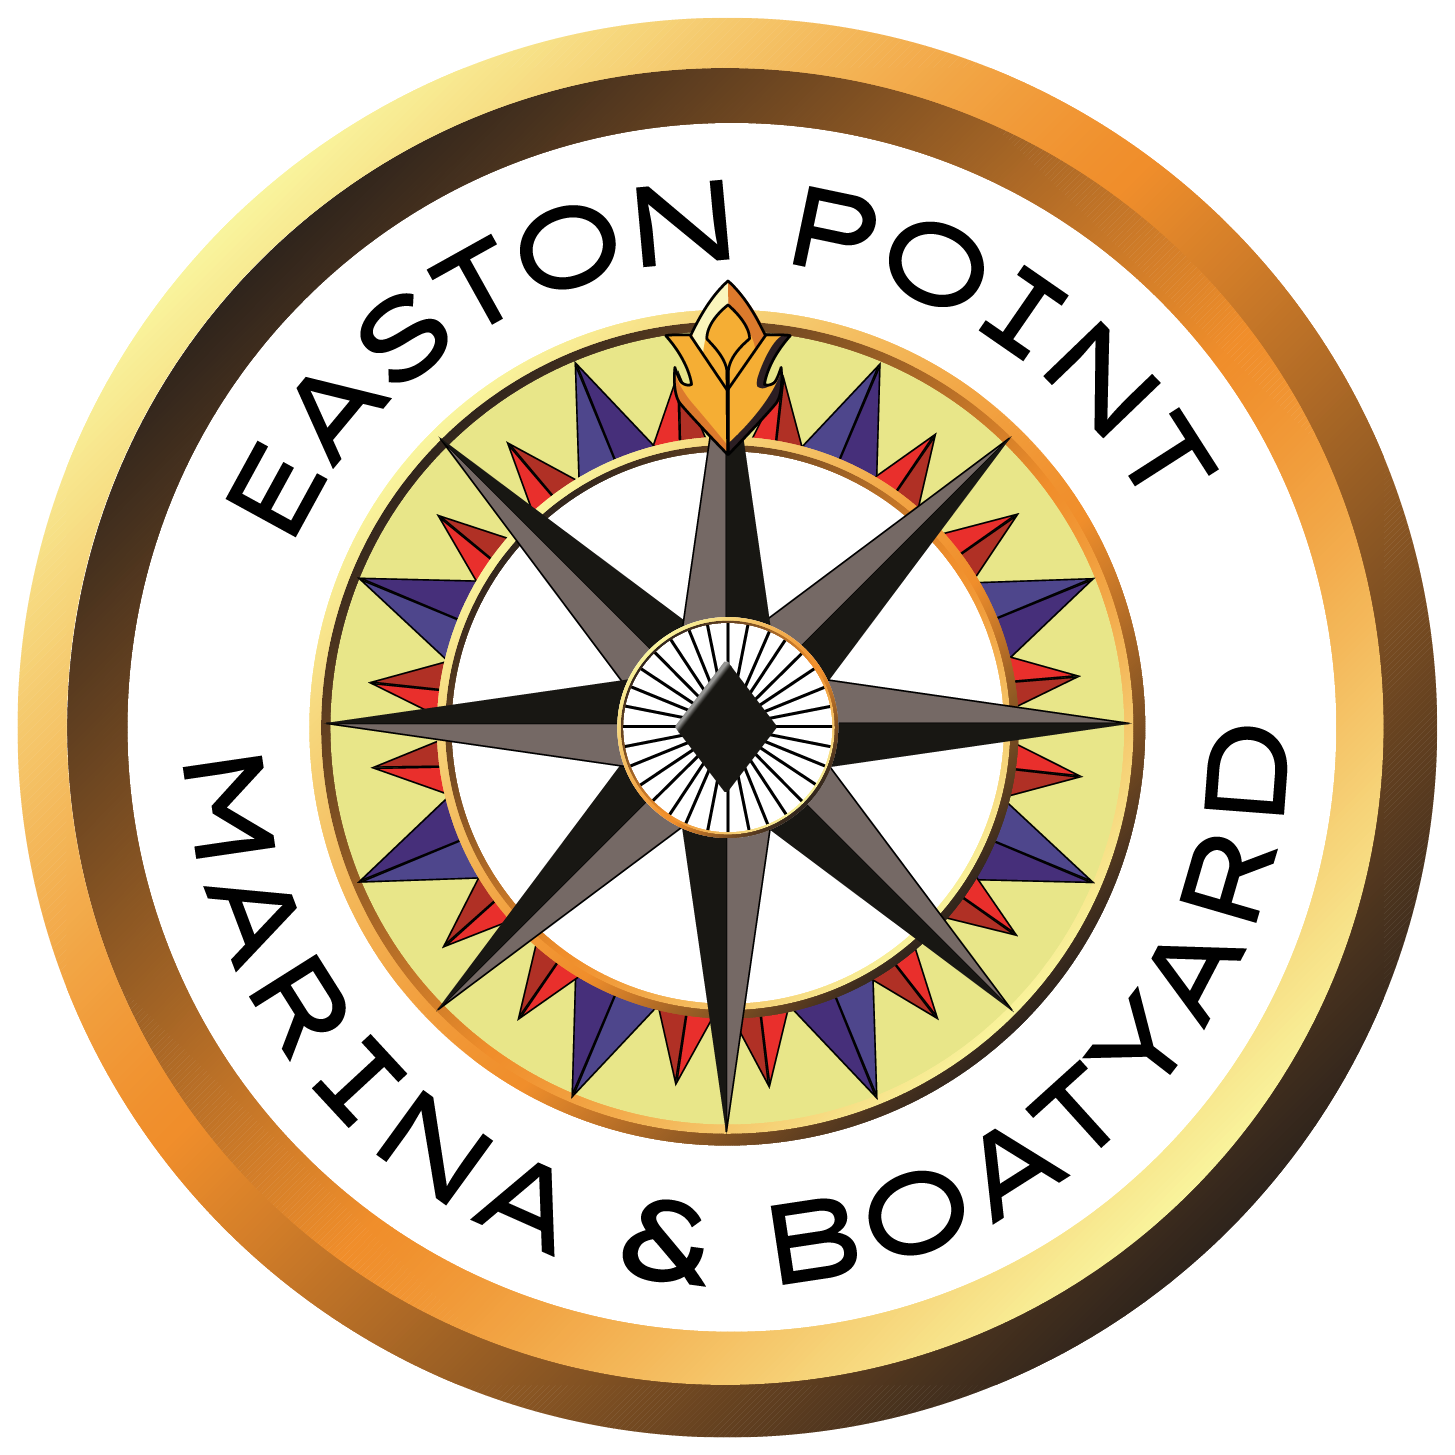 EastonPointMarina.com